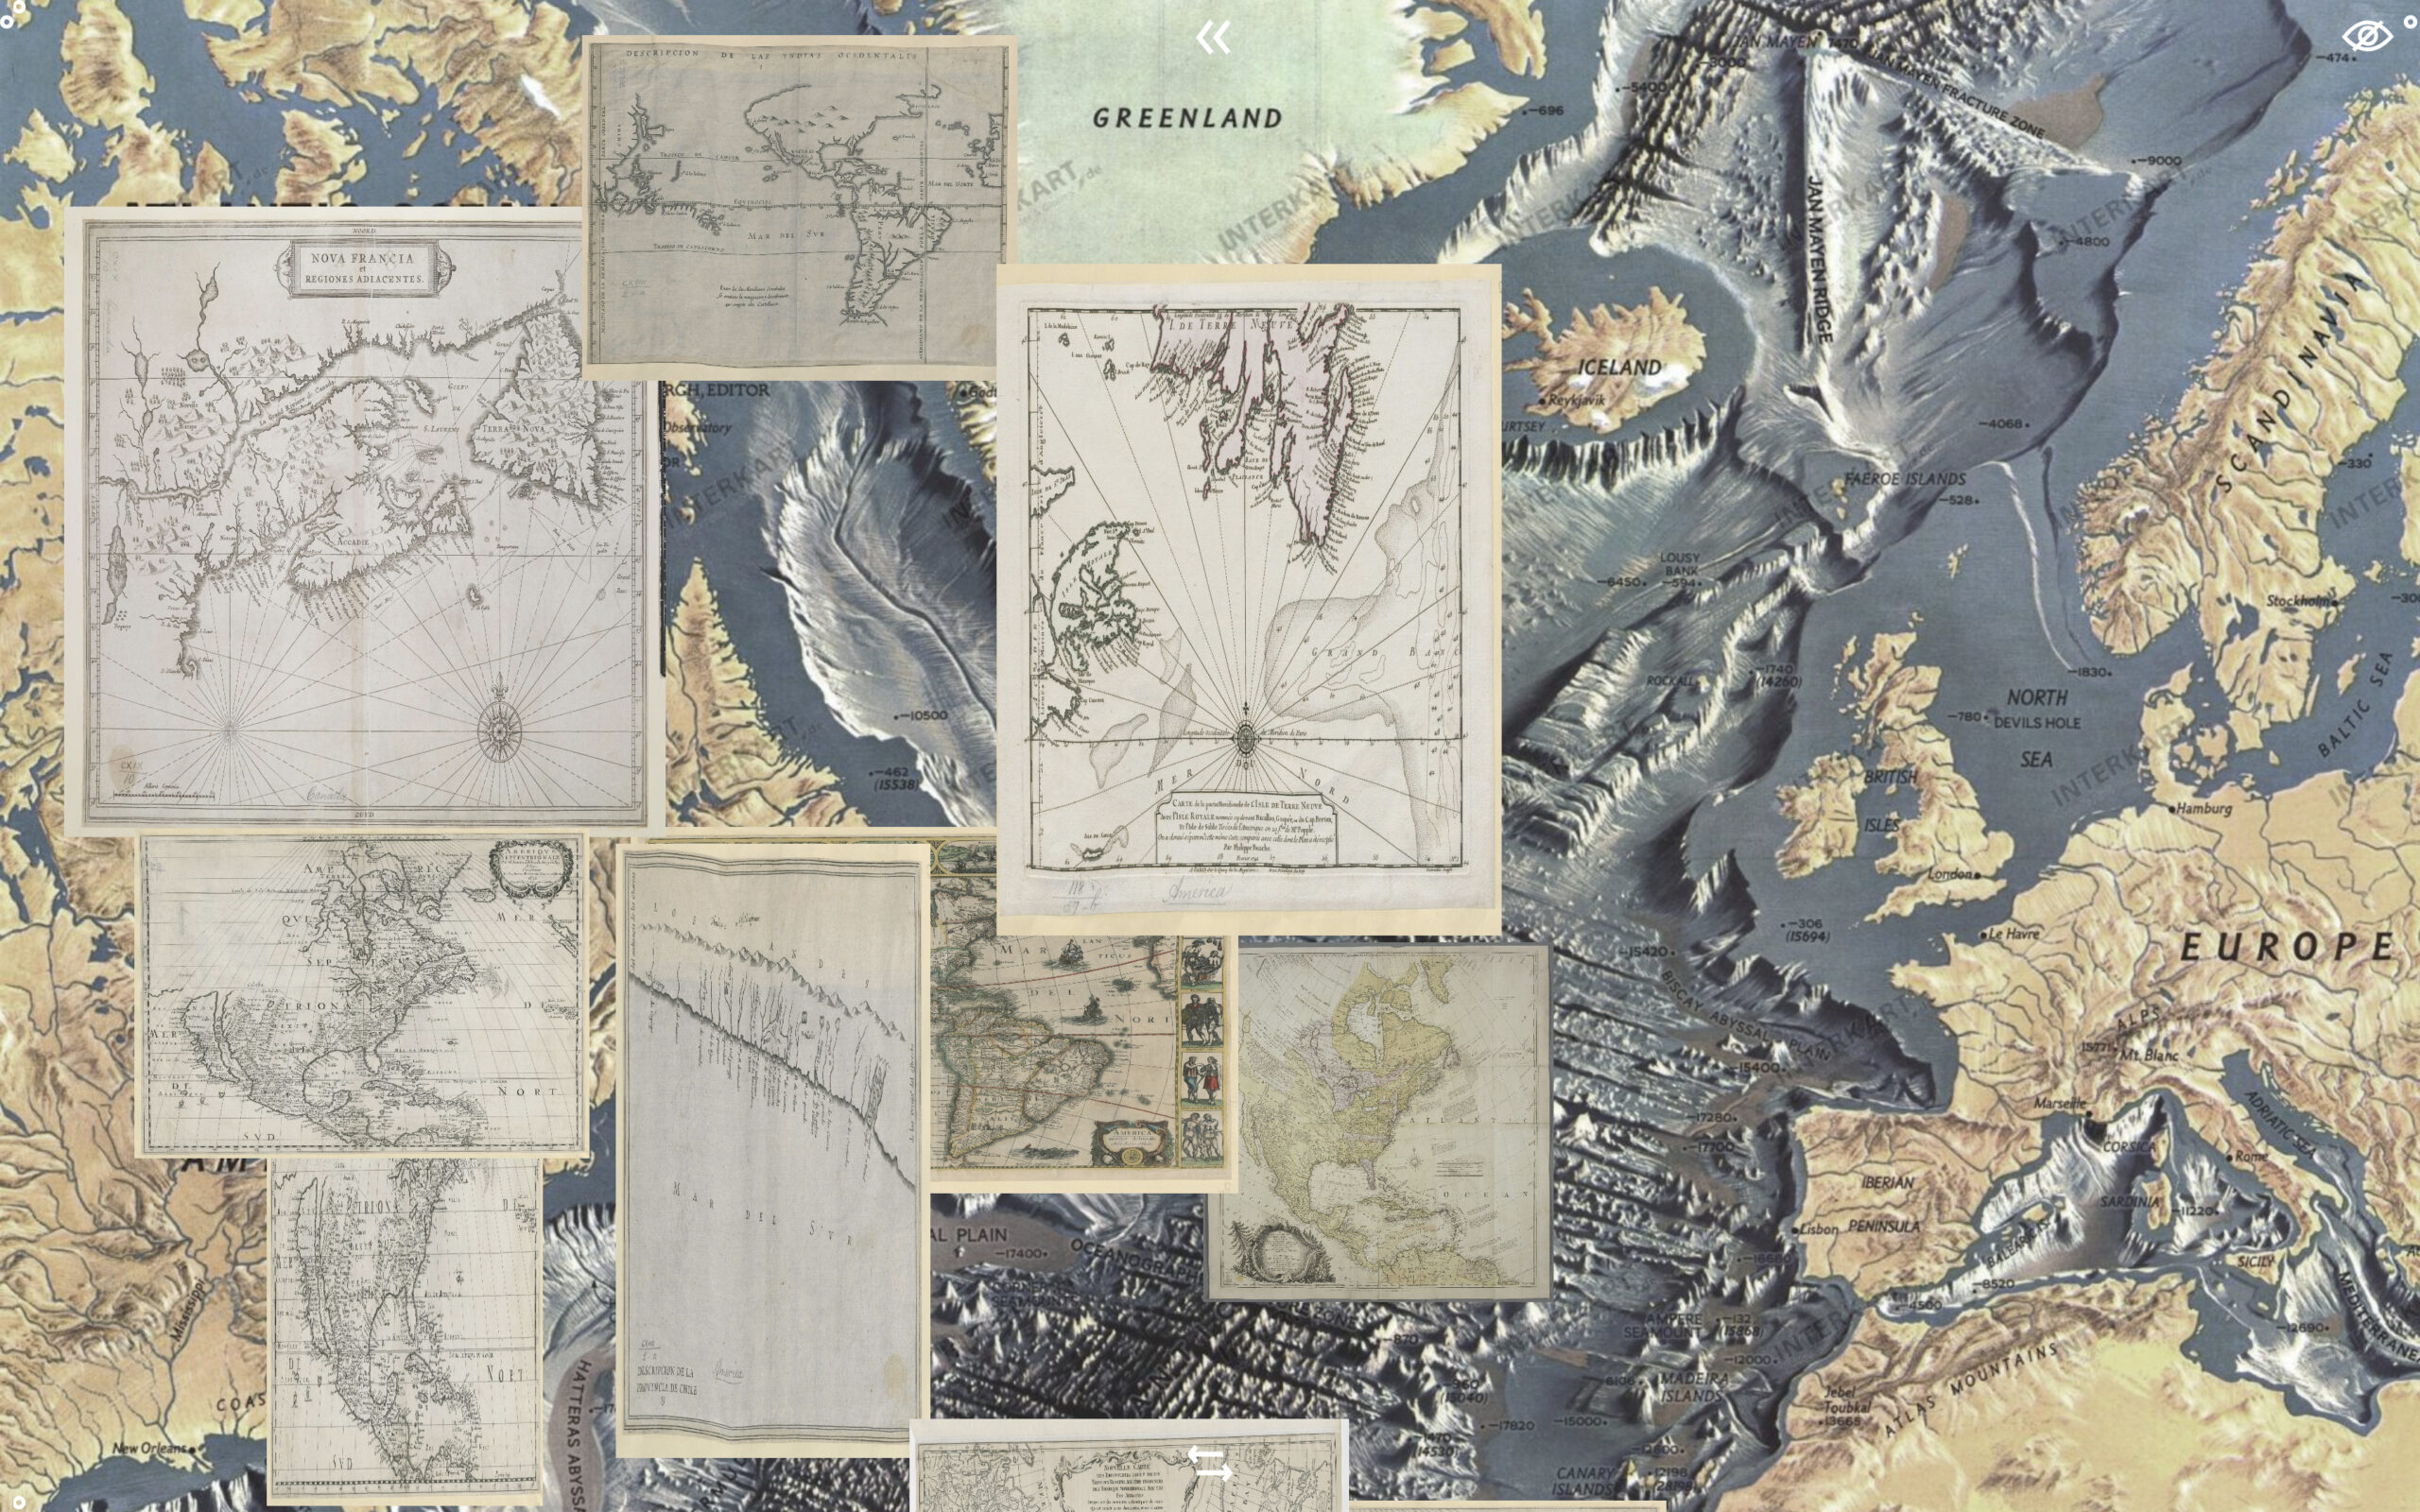 A map of the Atlantic Ocean showing detailed nautical charts of the same area laid on over the top of it.